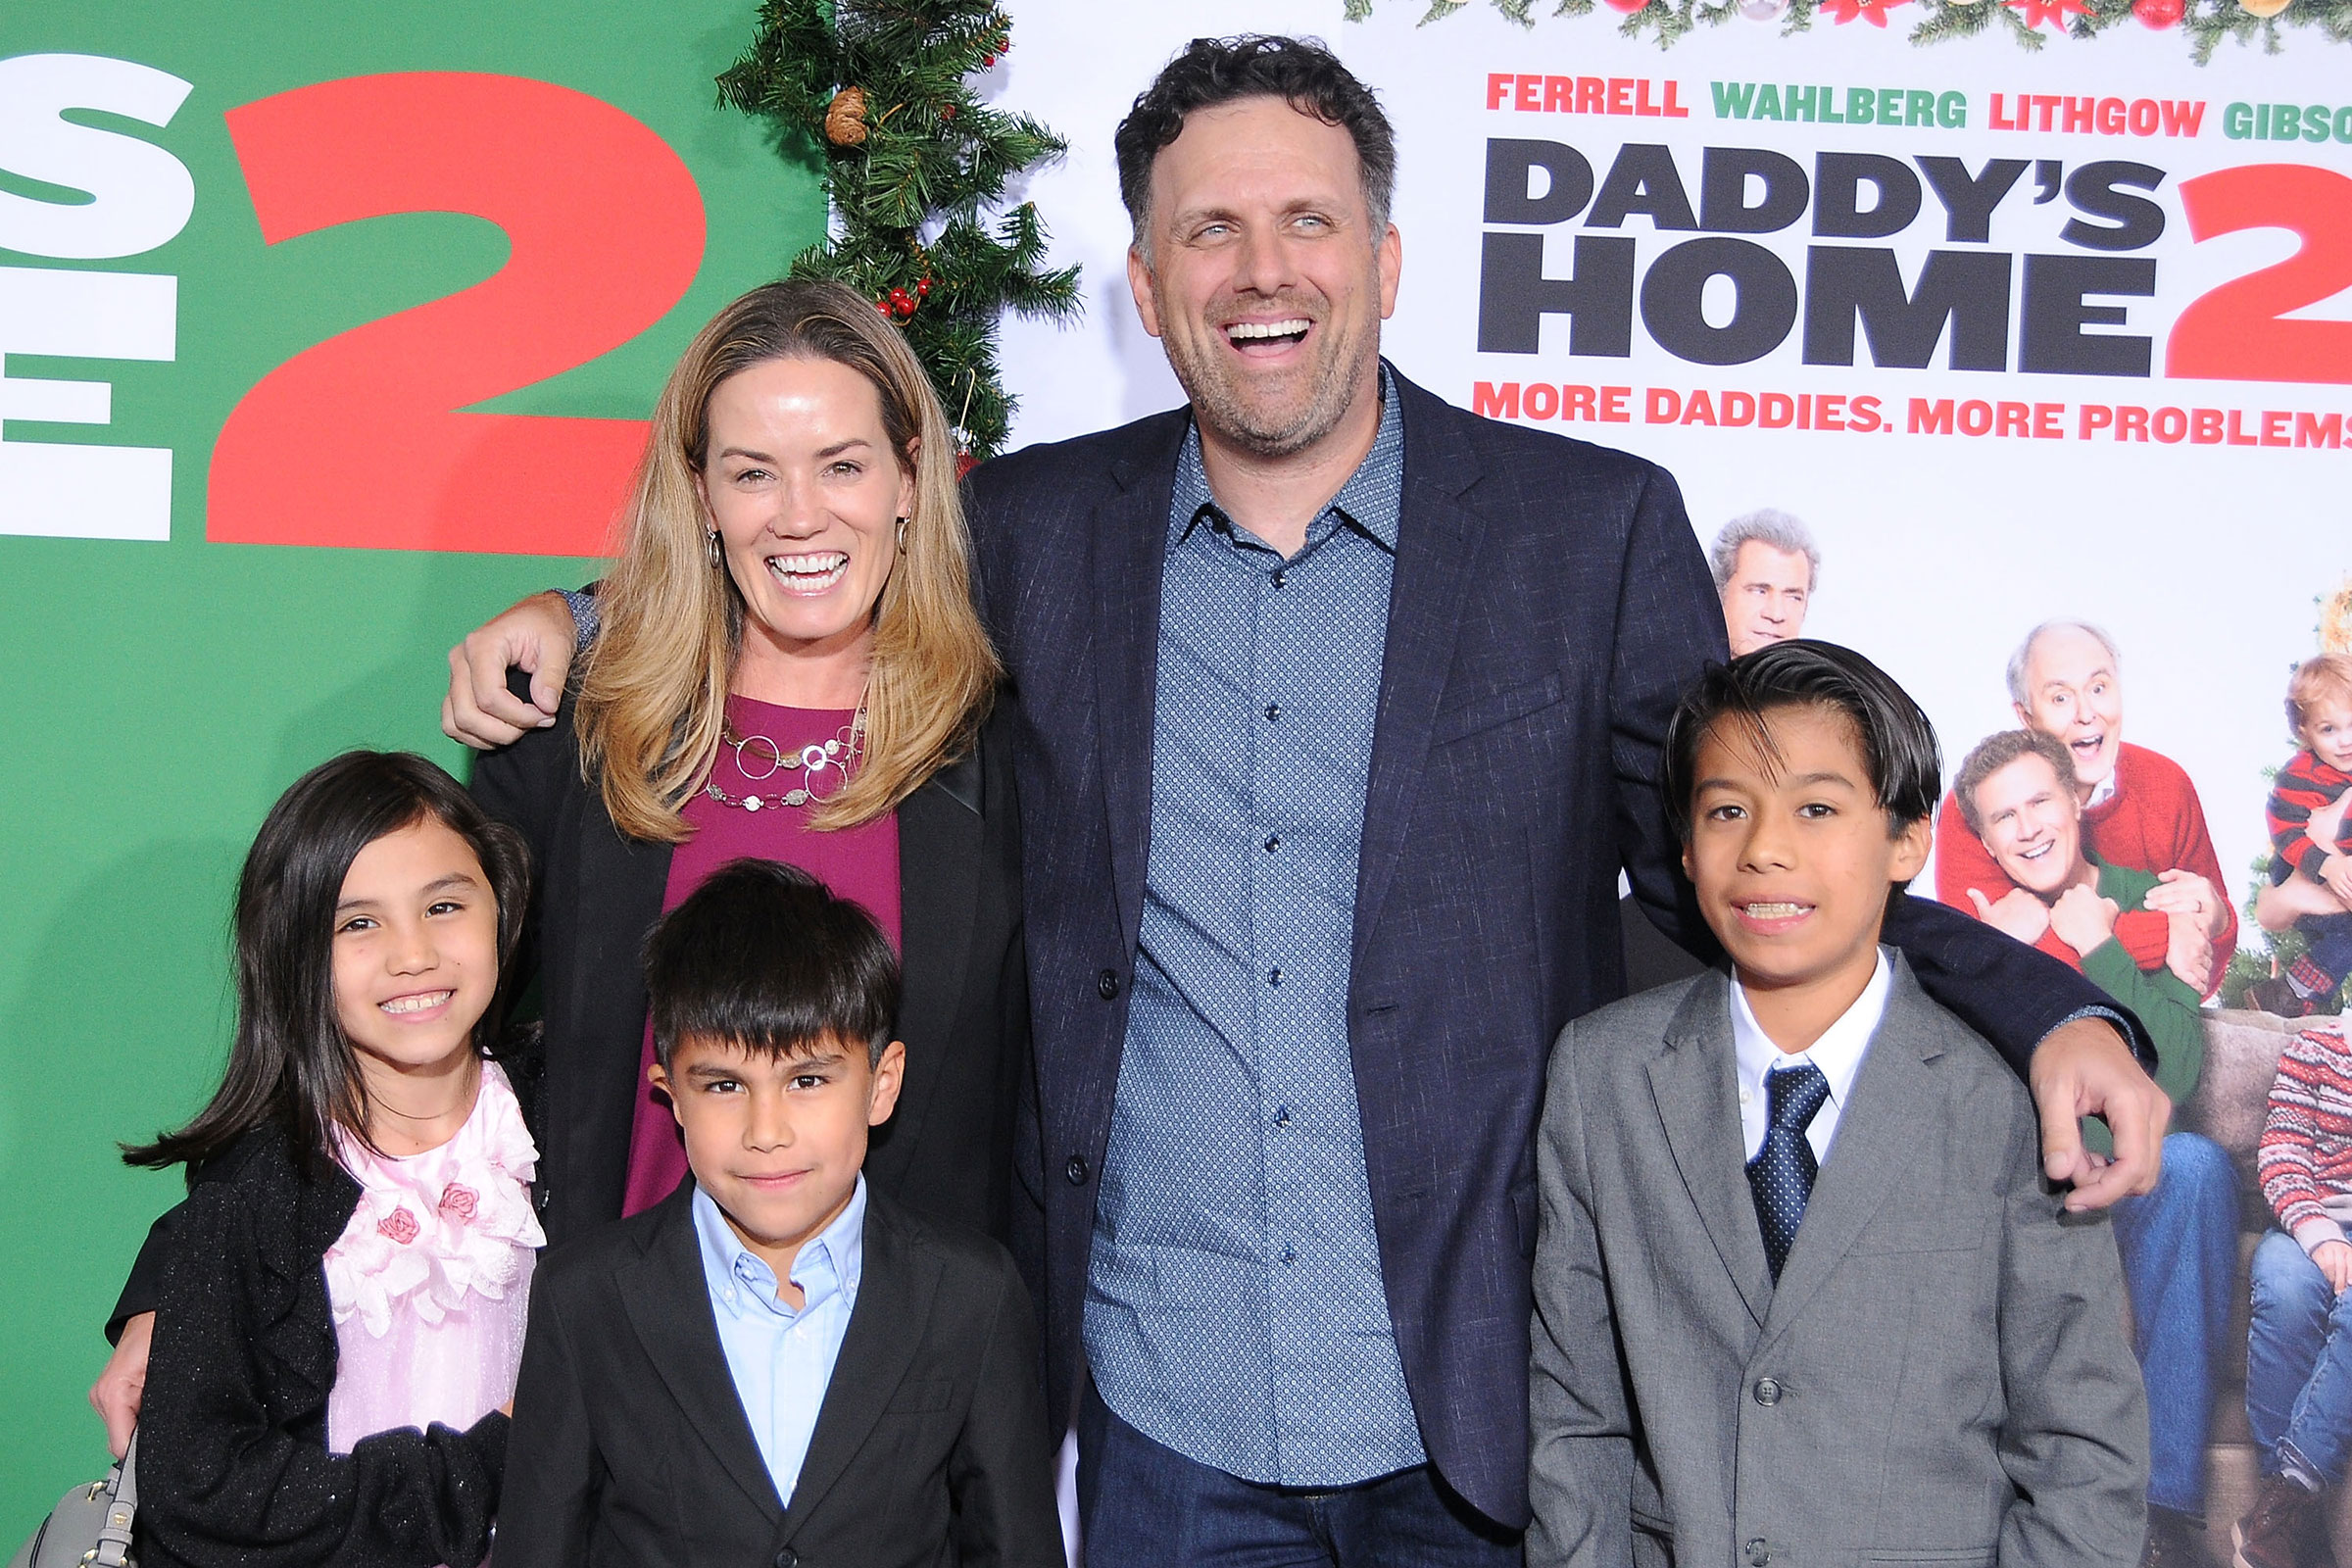 Director Sean Anders and family attend the premiere of Paramount Pictures' 'Daddy's Home 2' at Regency Village Theatre on November 5, 2017 in Westwood, California.